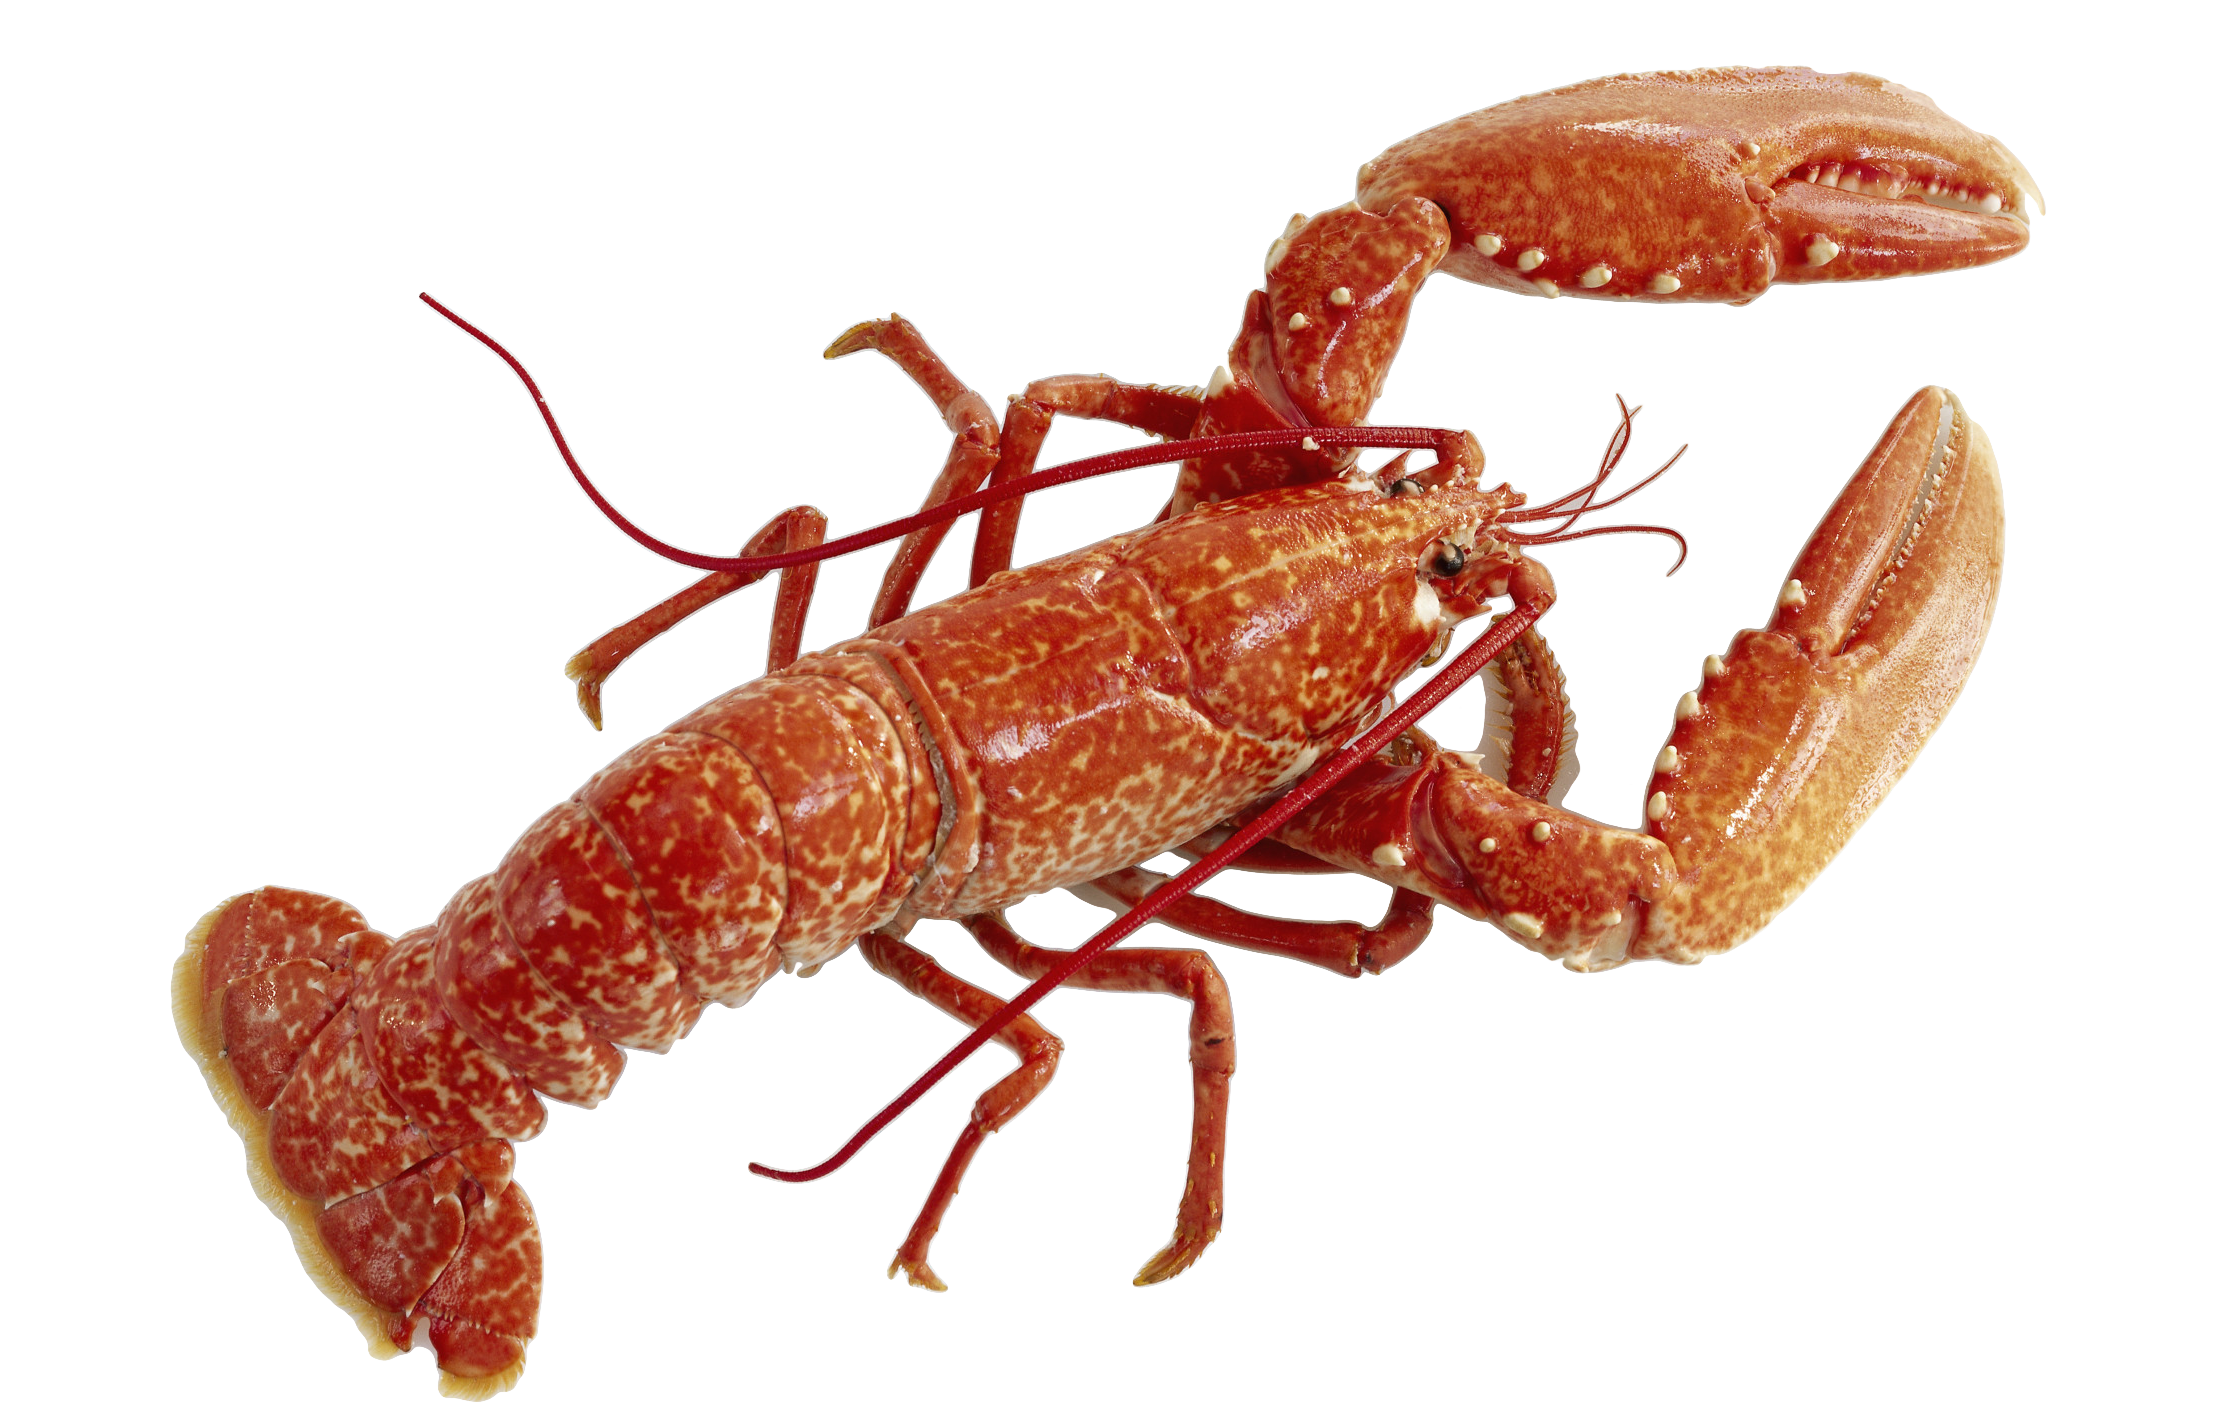 Lobster png by AbsurdWordPreferred